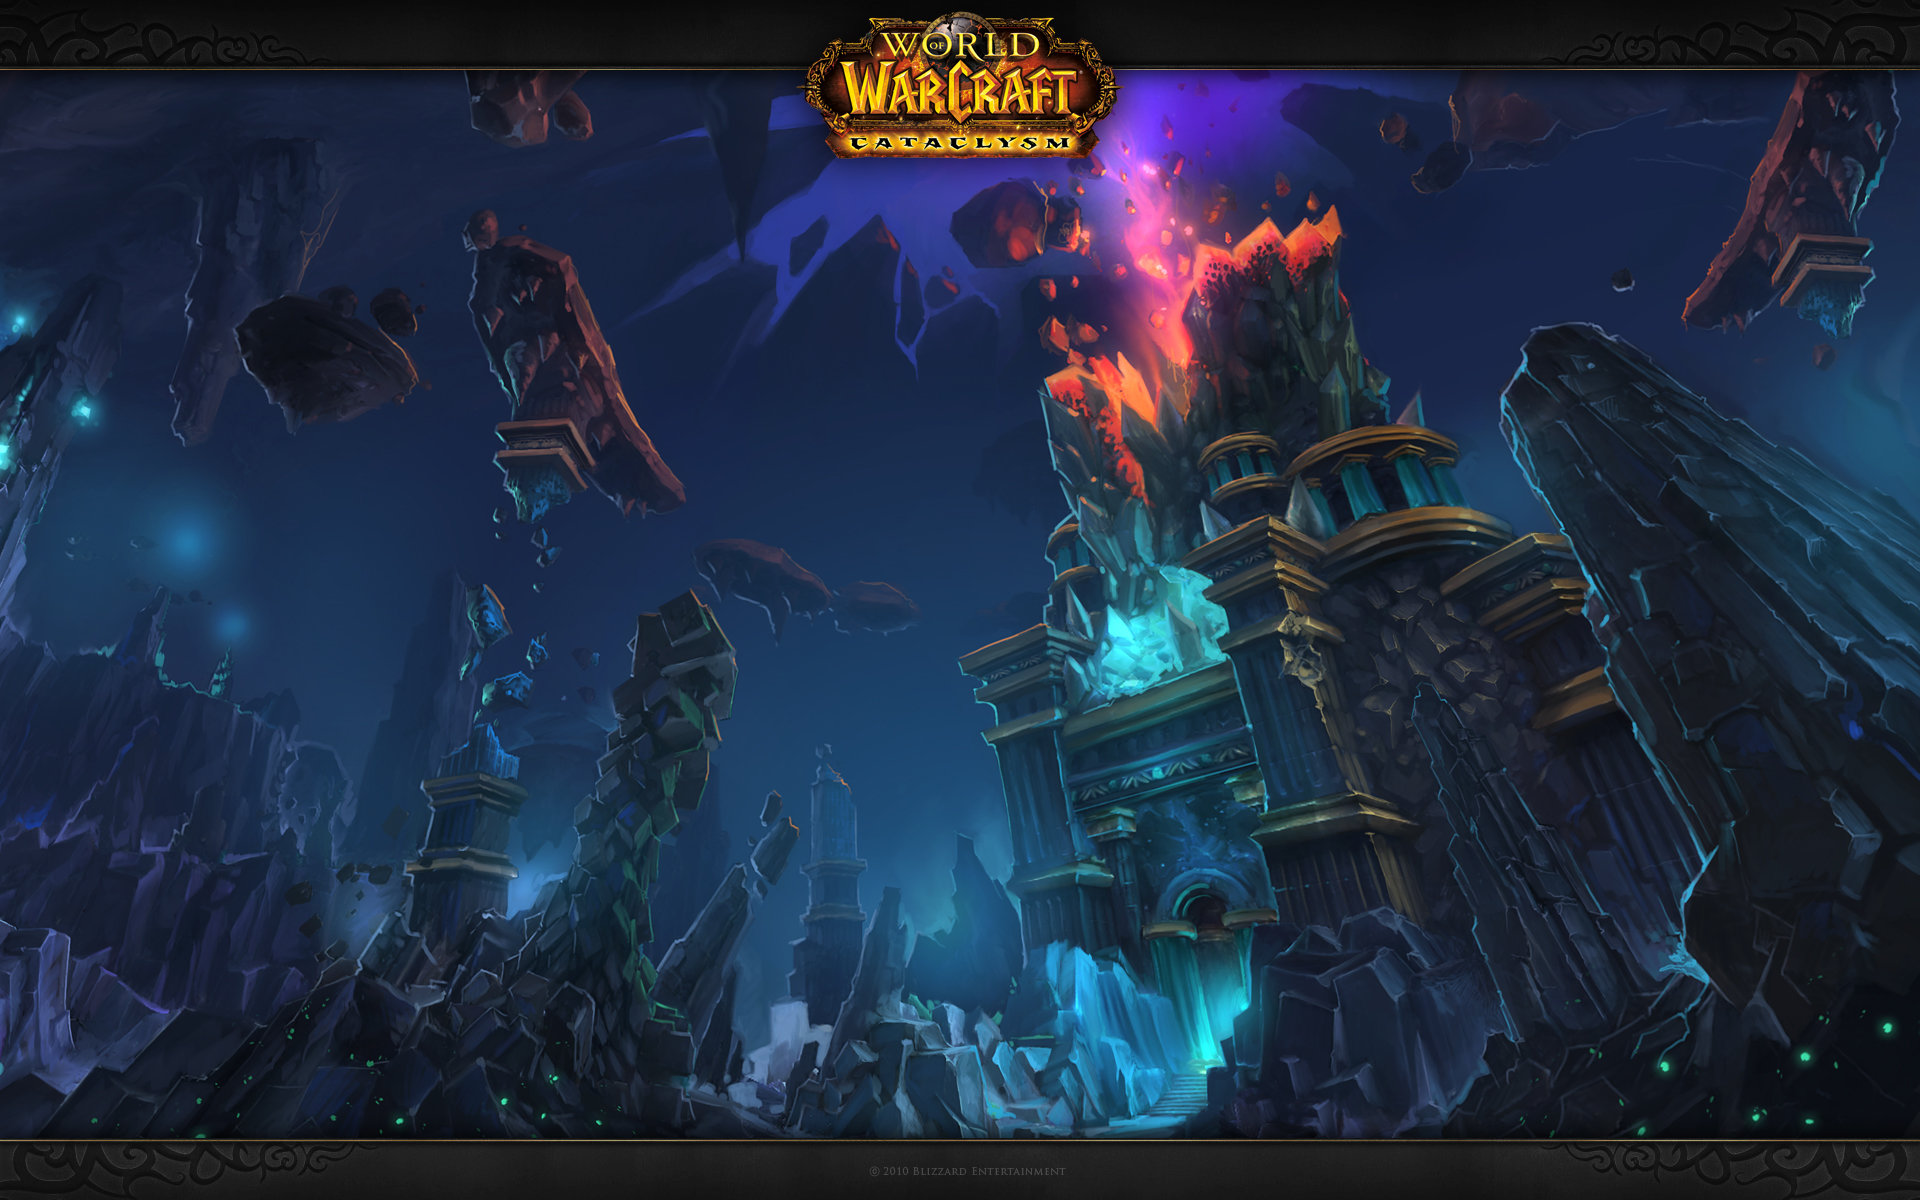 Download Hd 1920x1200 World Of Warcraft Cataclysm Pc